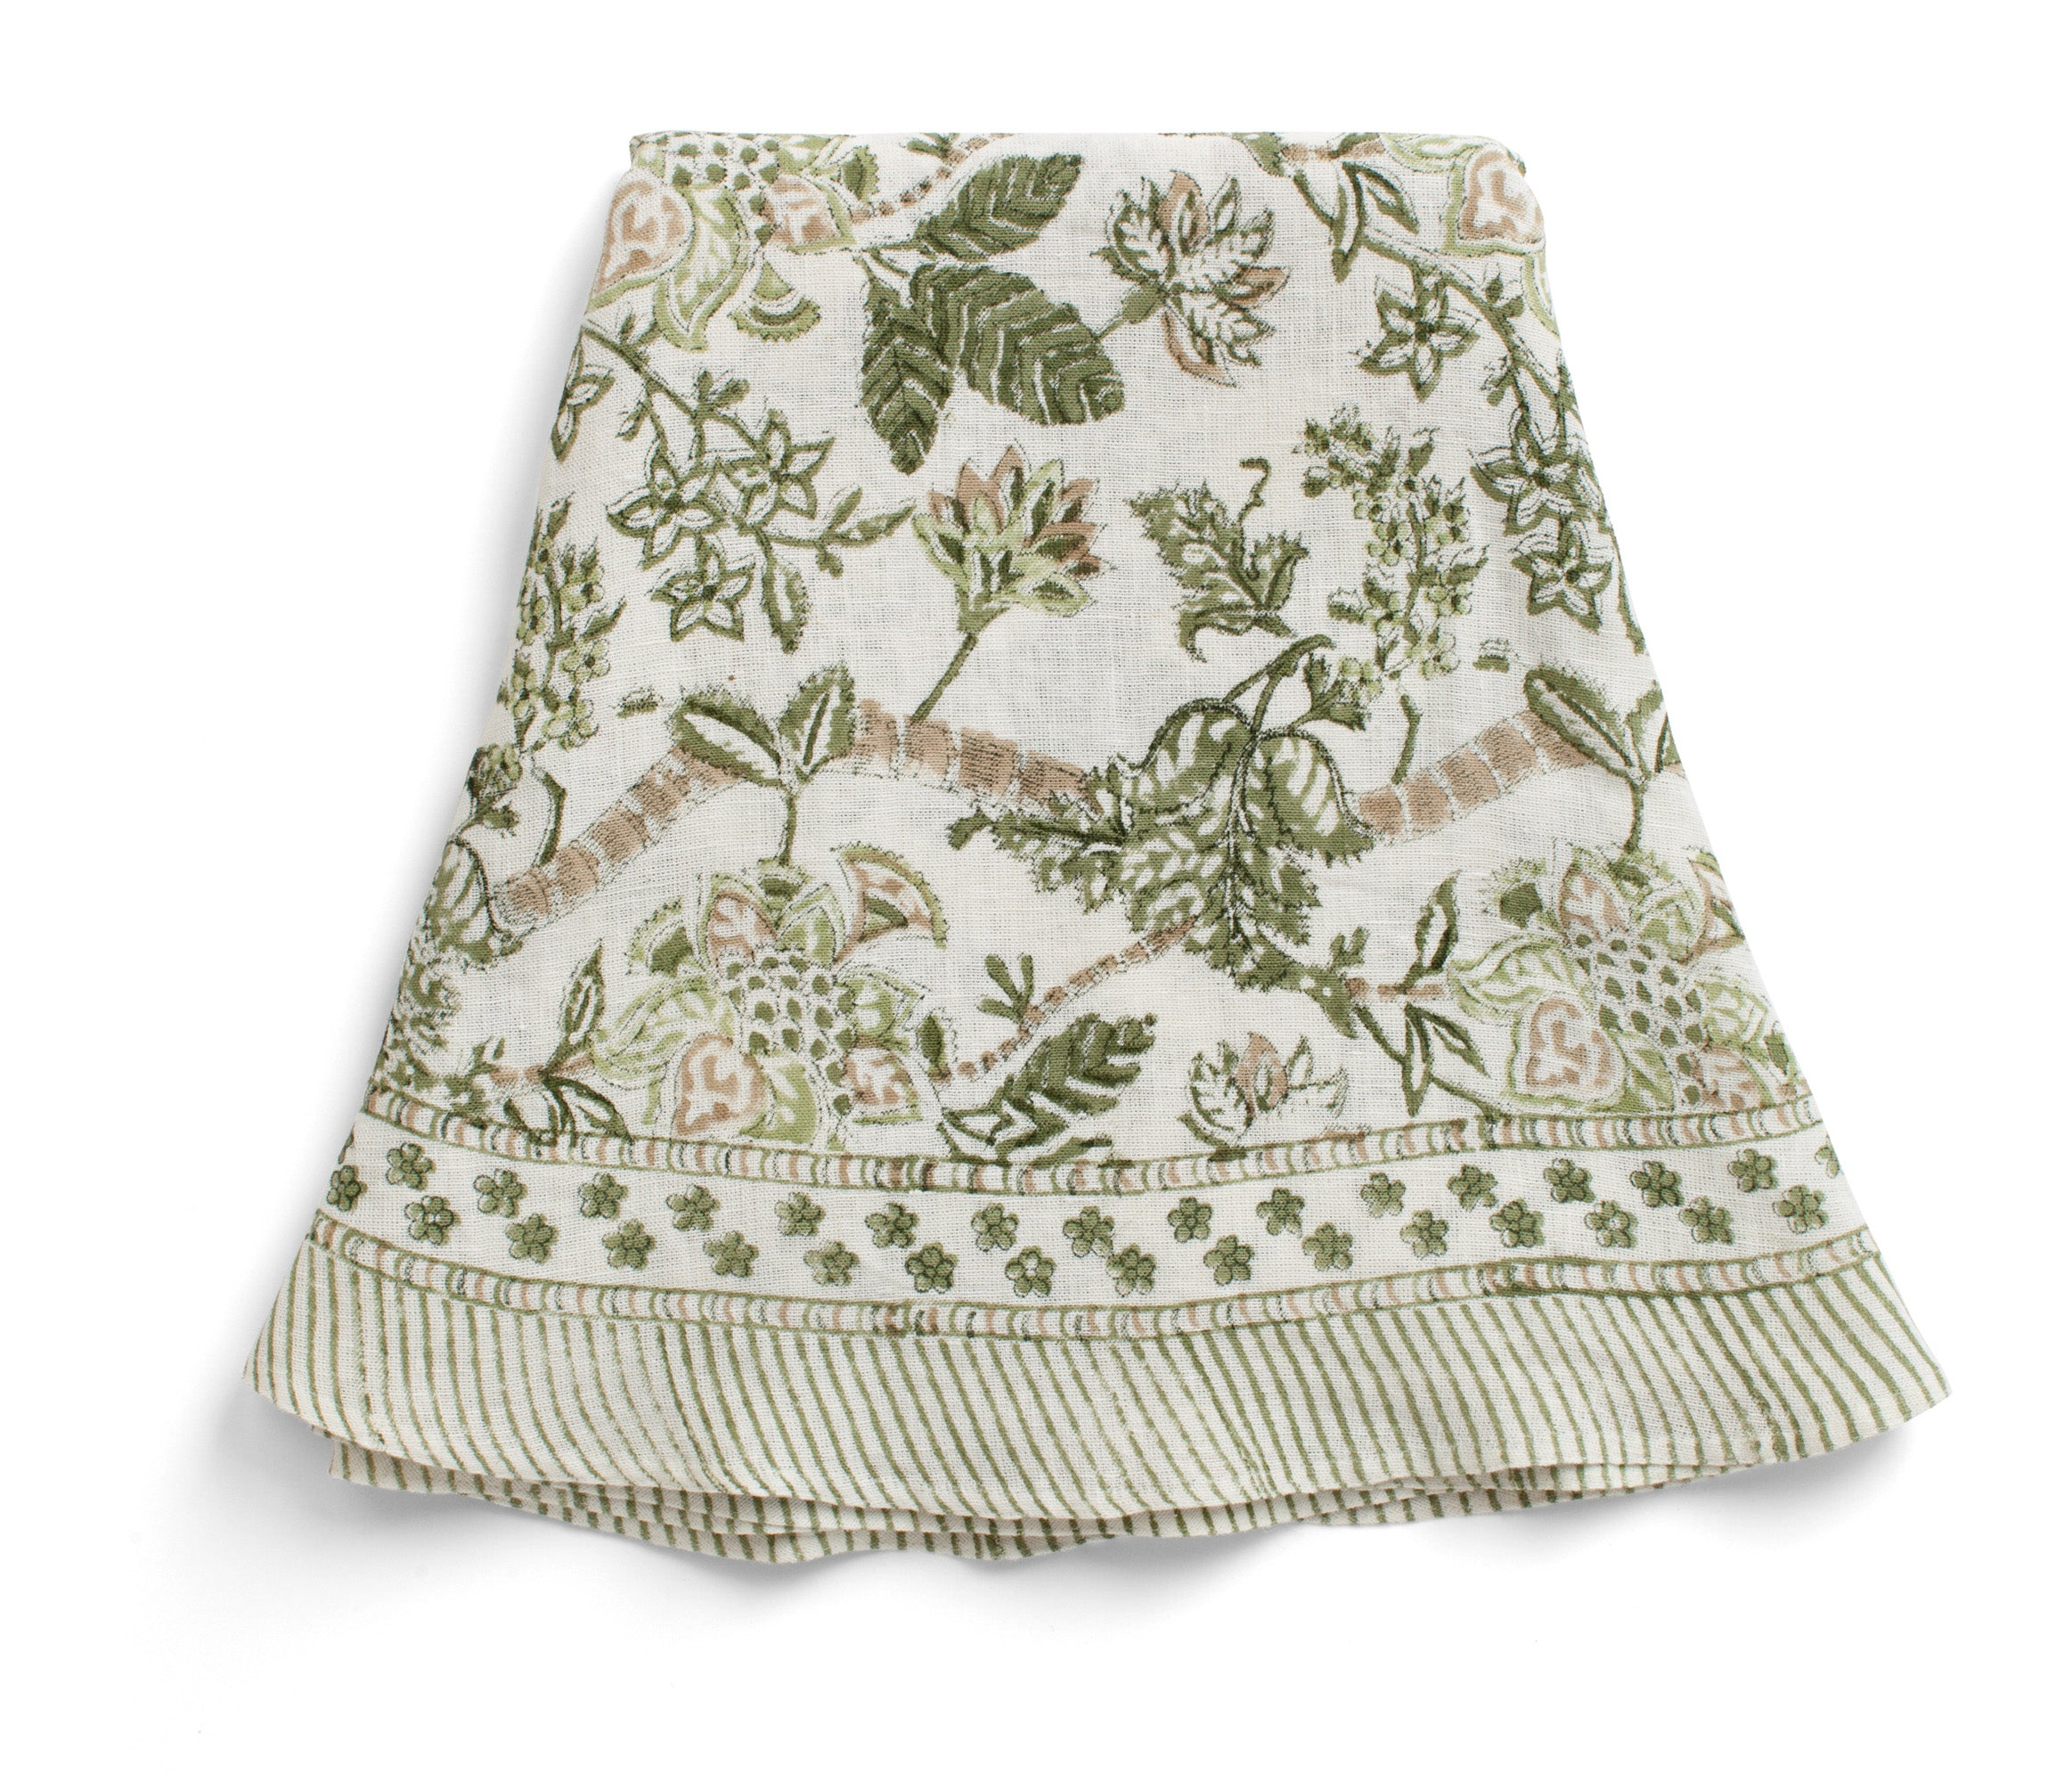 Round Linen Tablecloth with Floral print in Olive